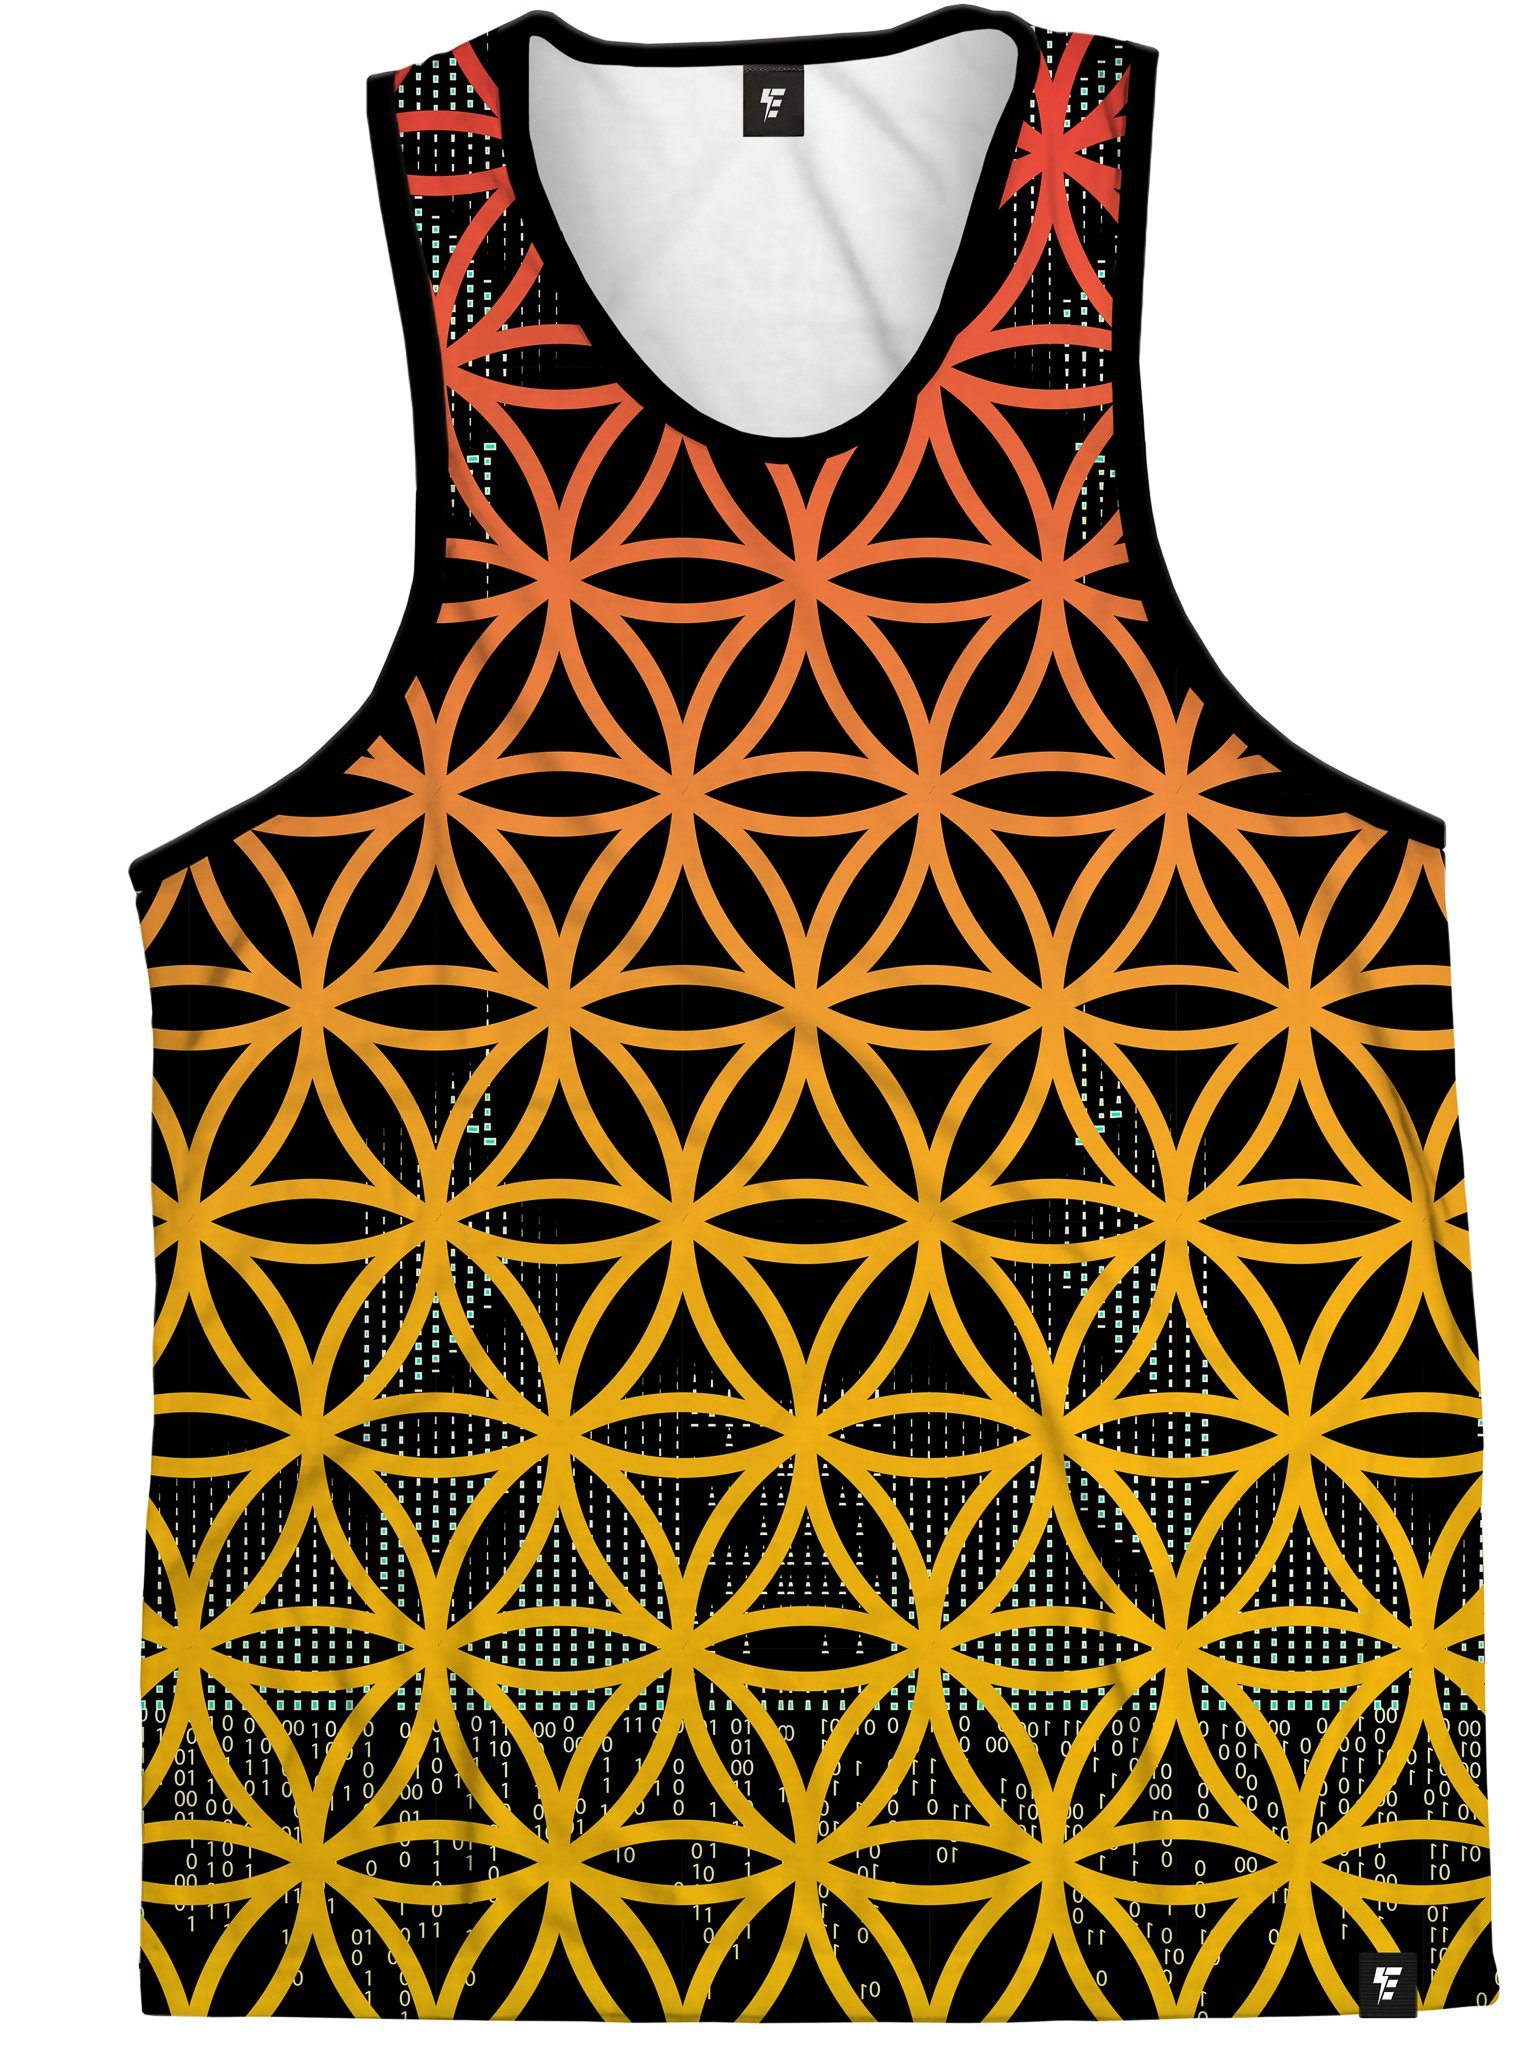 Transforming Unisex Tank Top Tank Tops Electro Threads